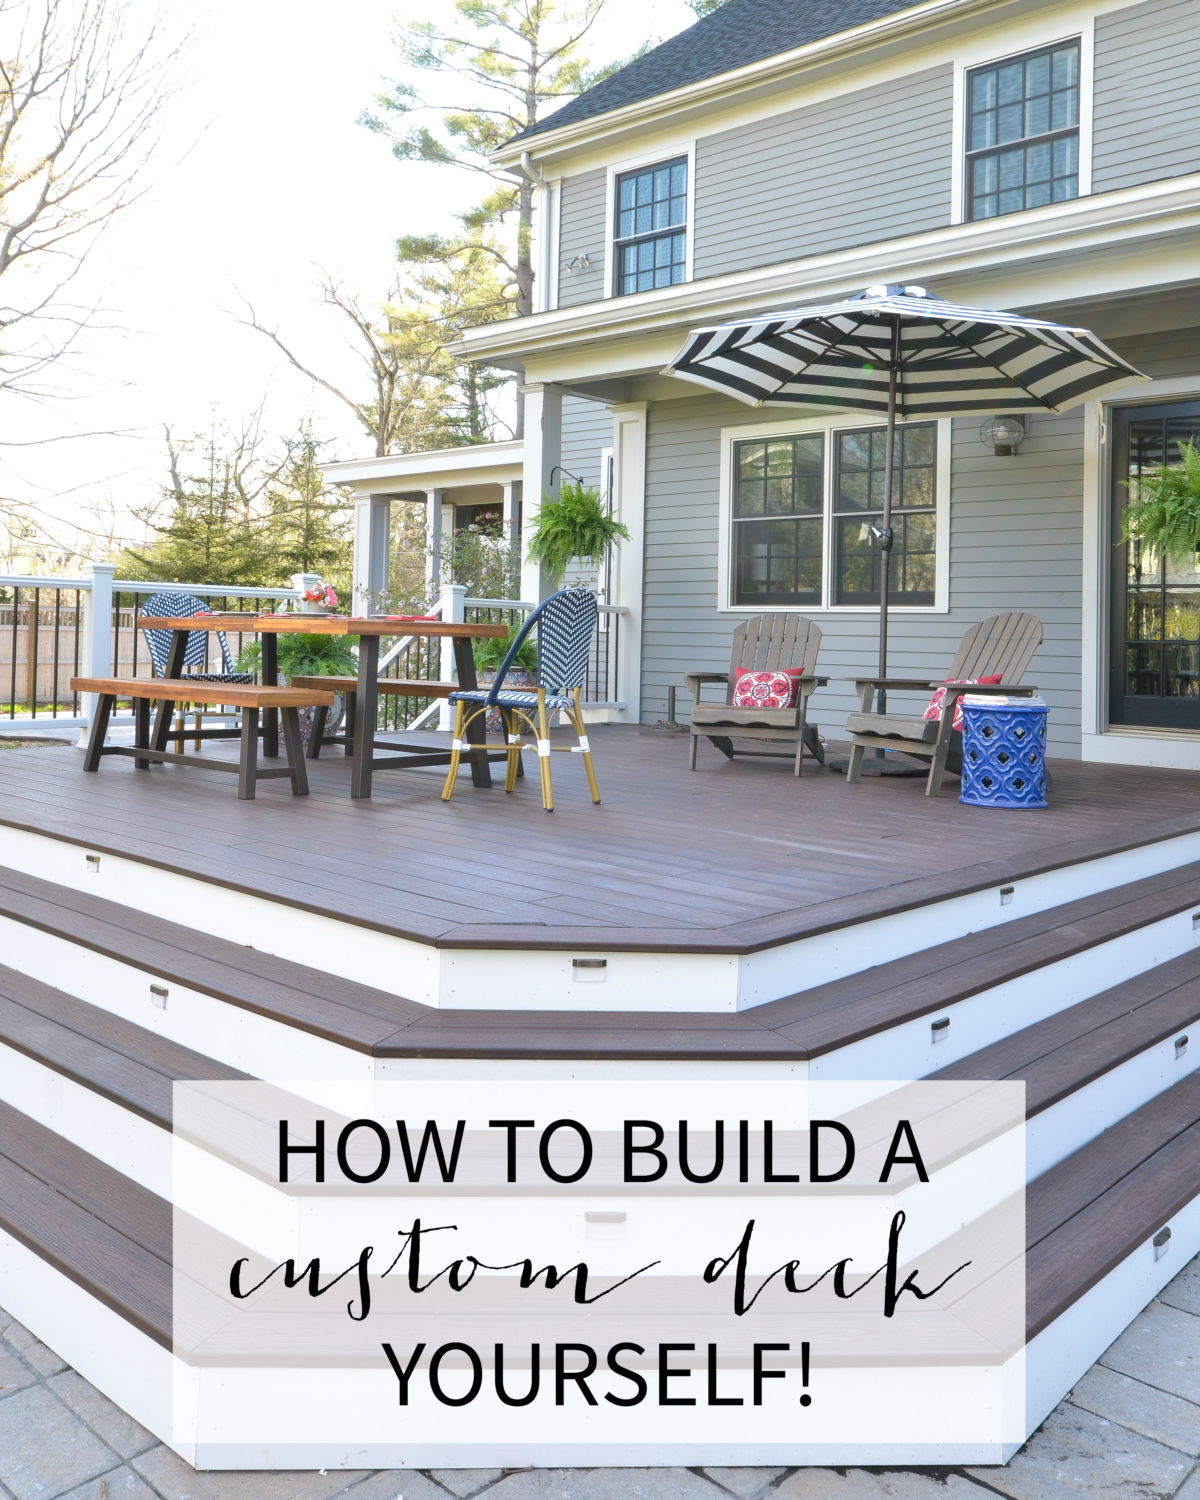 DIY deck reveal - how to build a deck yourself!